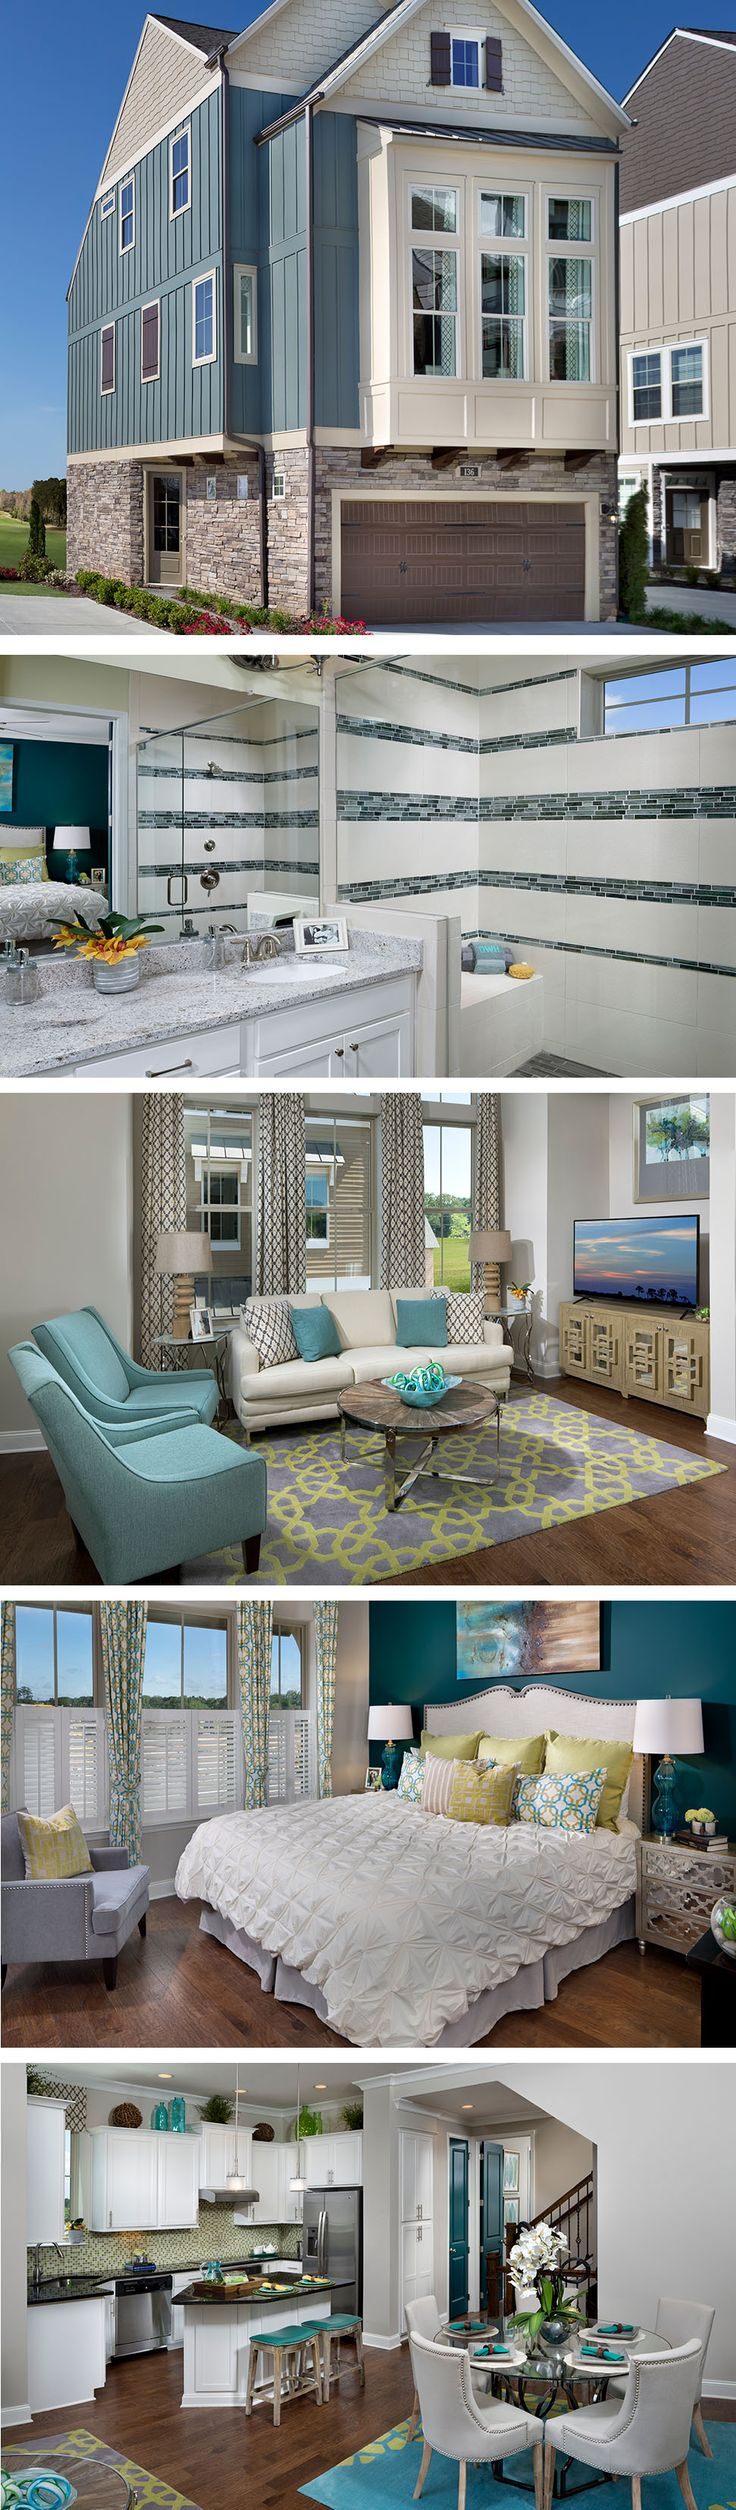 The Bellbrook by David Weekley Homes in The Village of Belmont Commons features an open style kitchen, dining and family room. The floor plan features 3 stories, a 2 car garage and the options for 2-3 bedrooms and bathrooms.